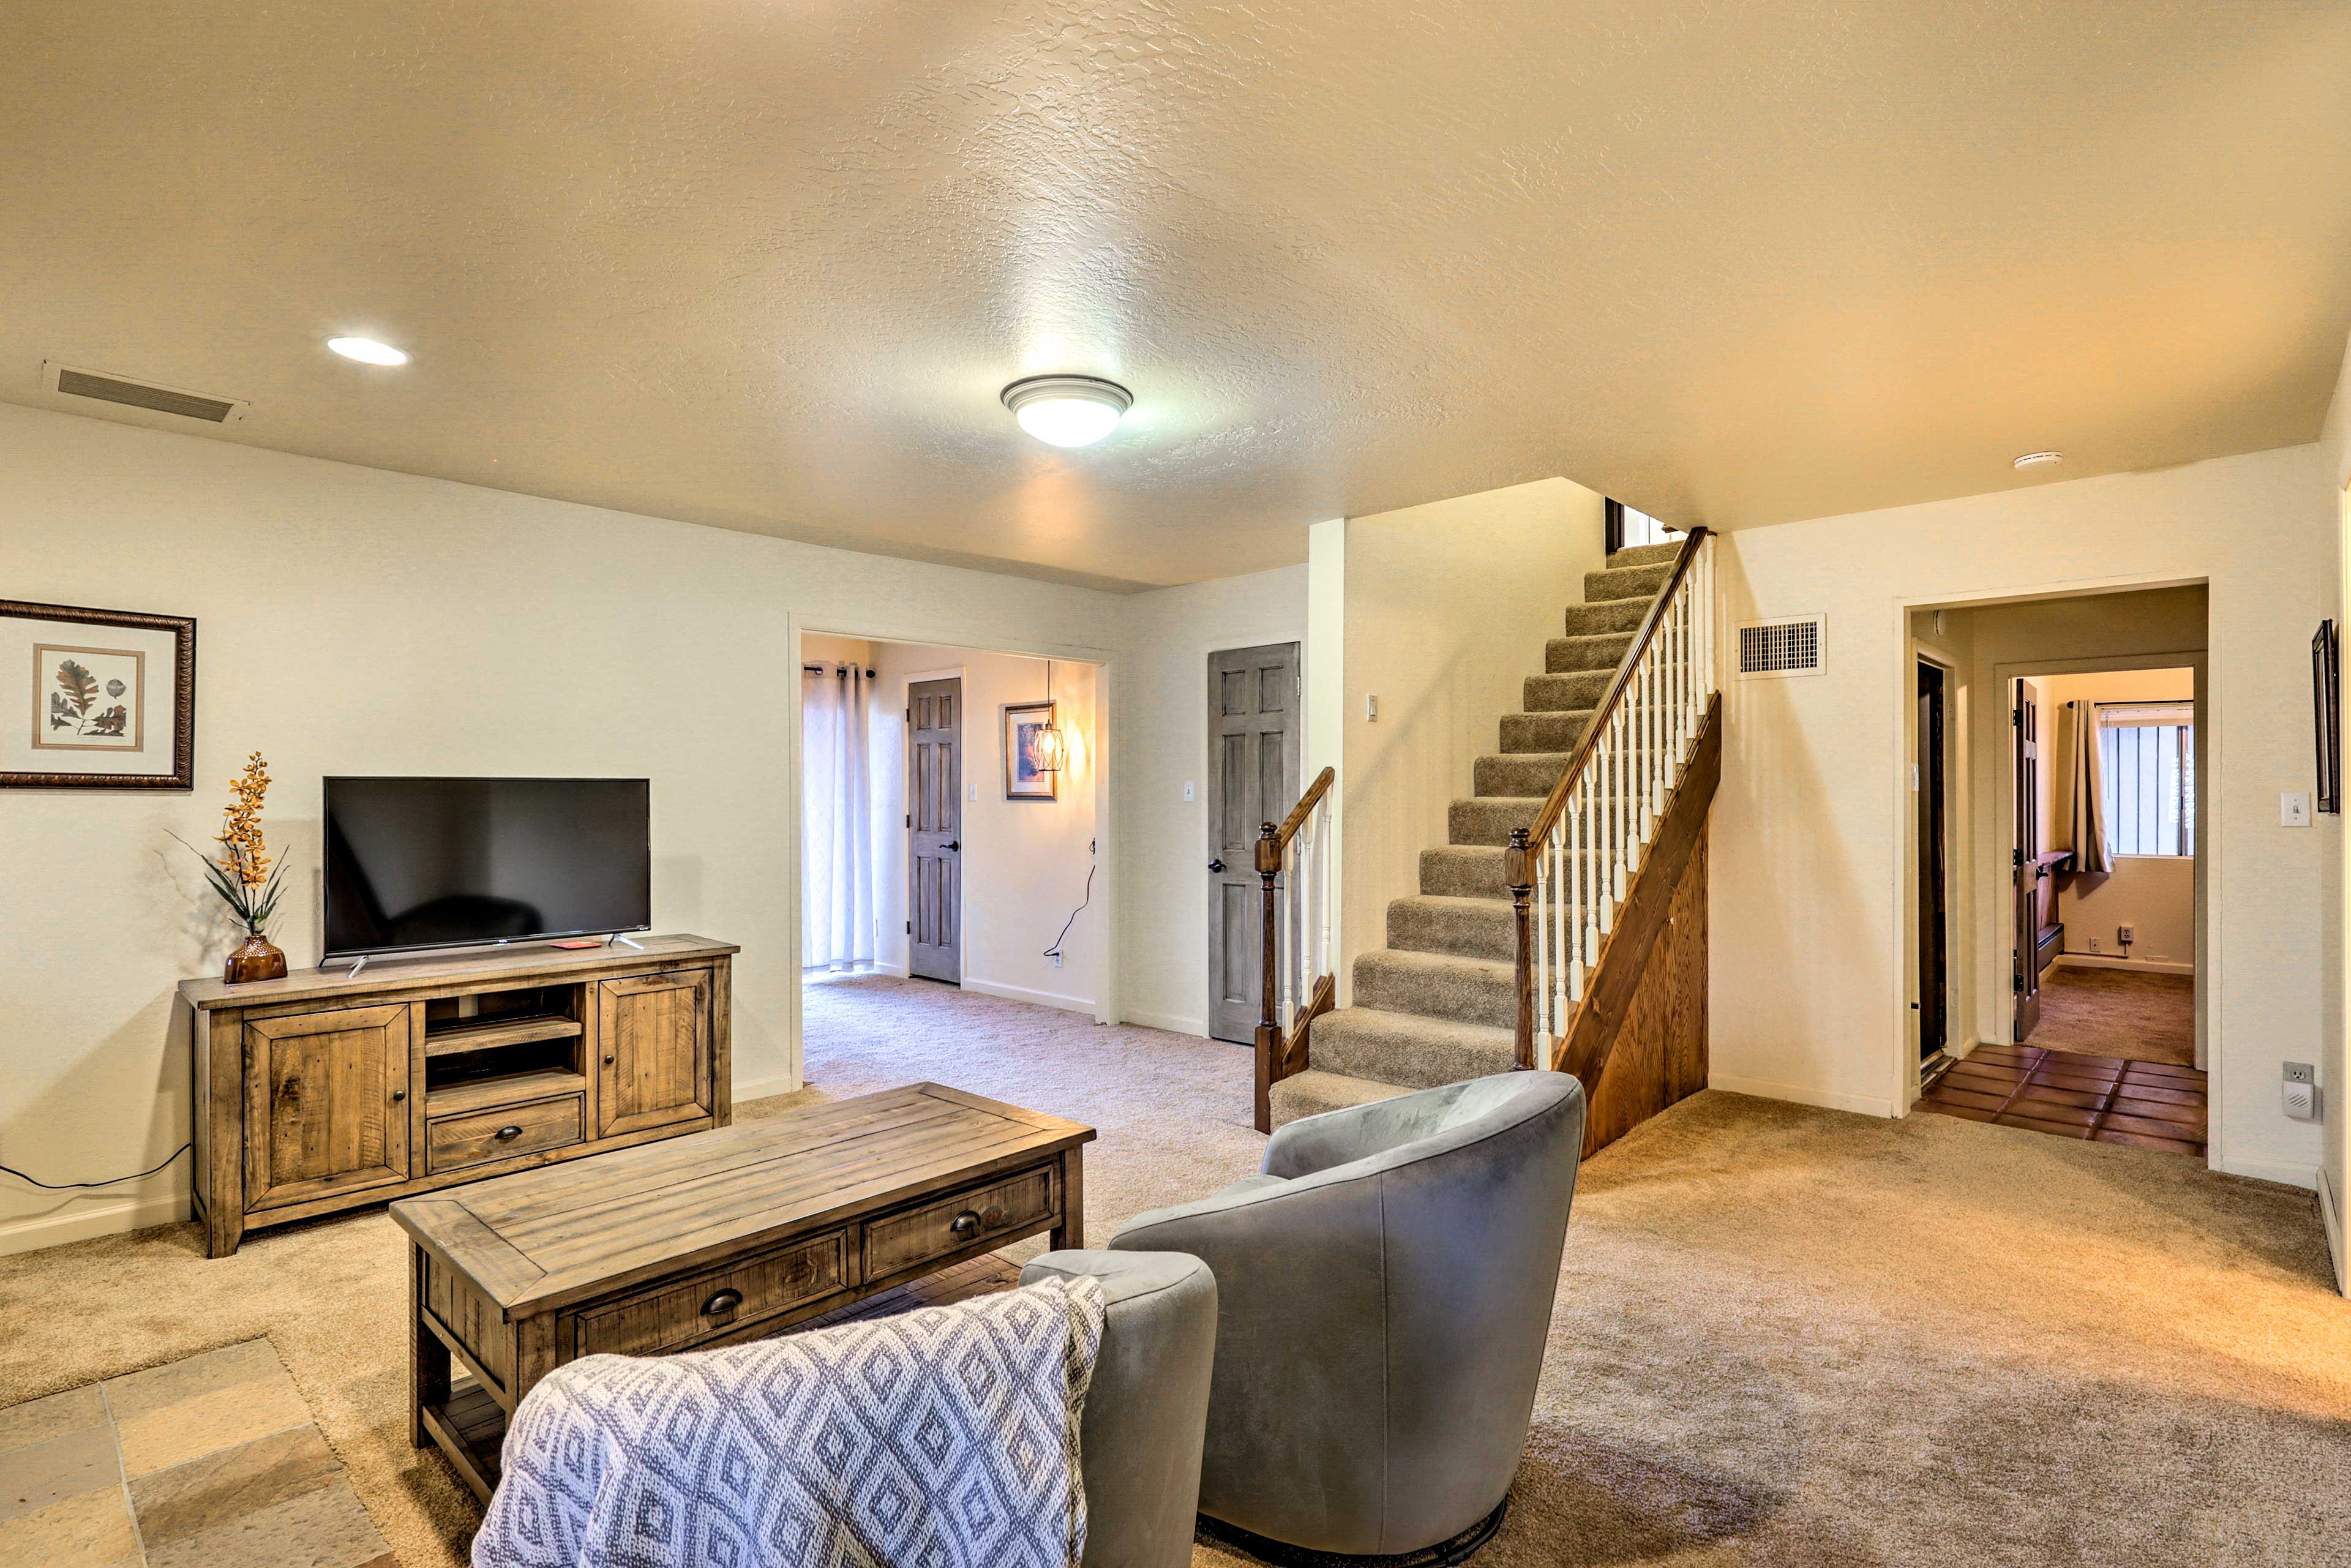 The basement den offers even more space to spread out while relaxing.